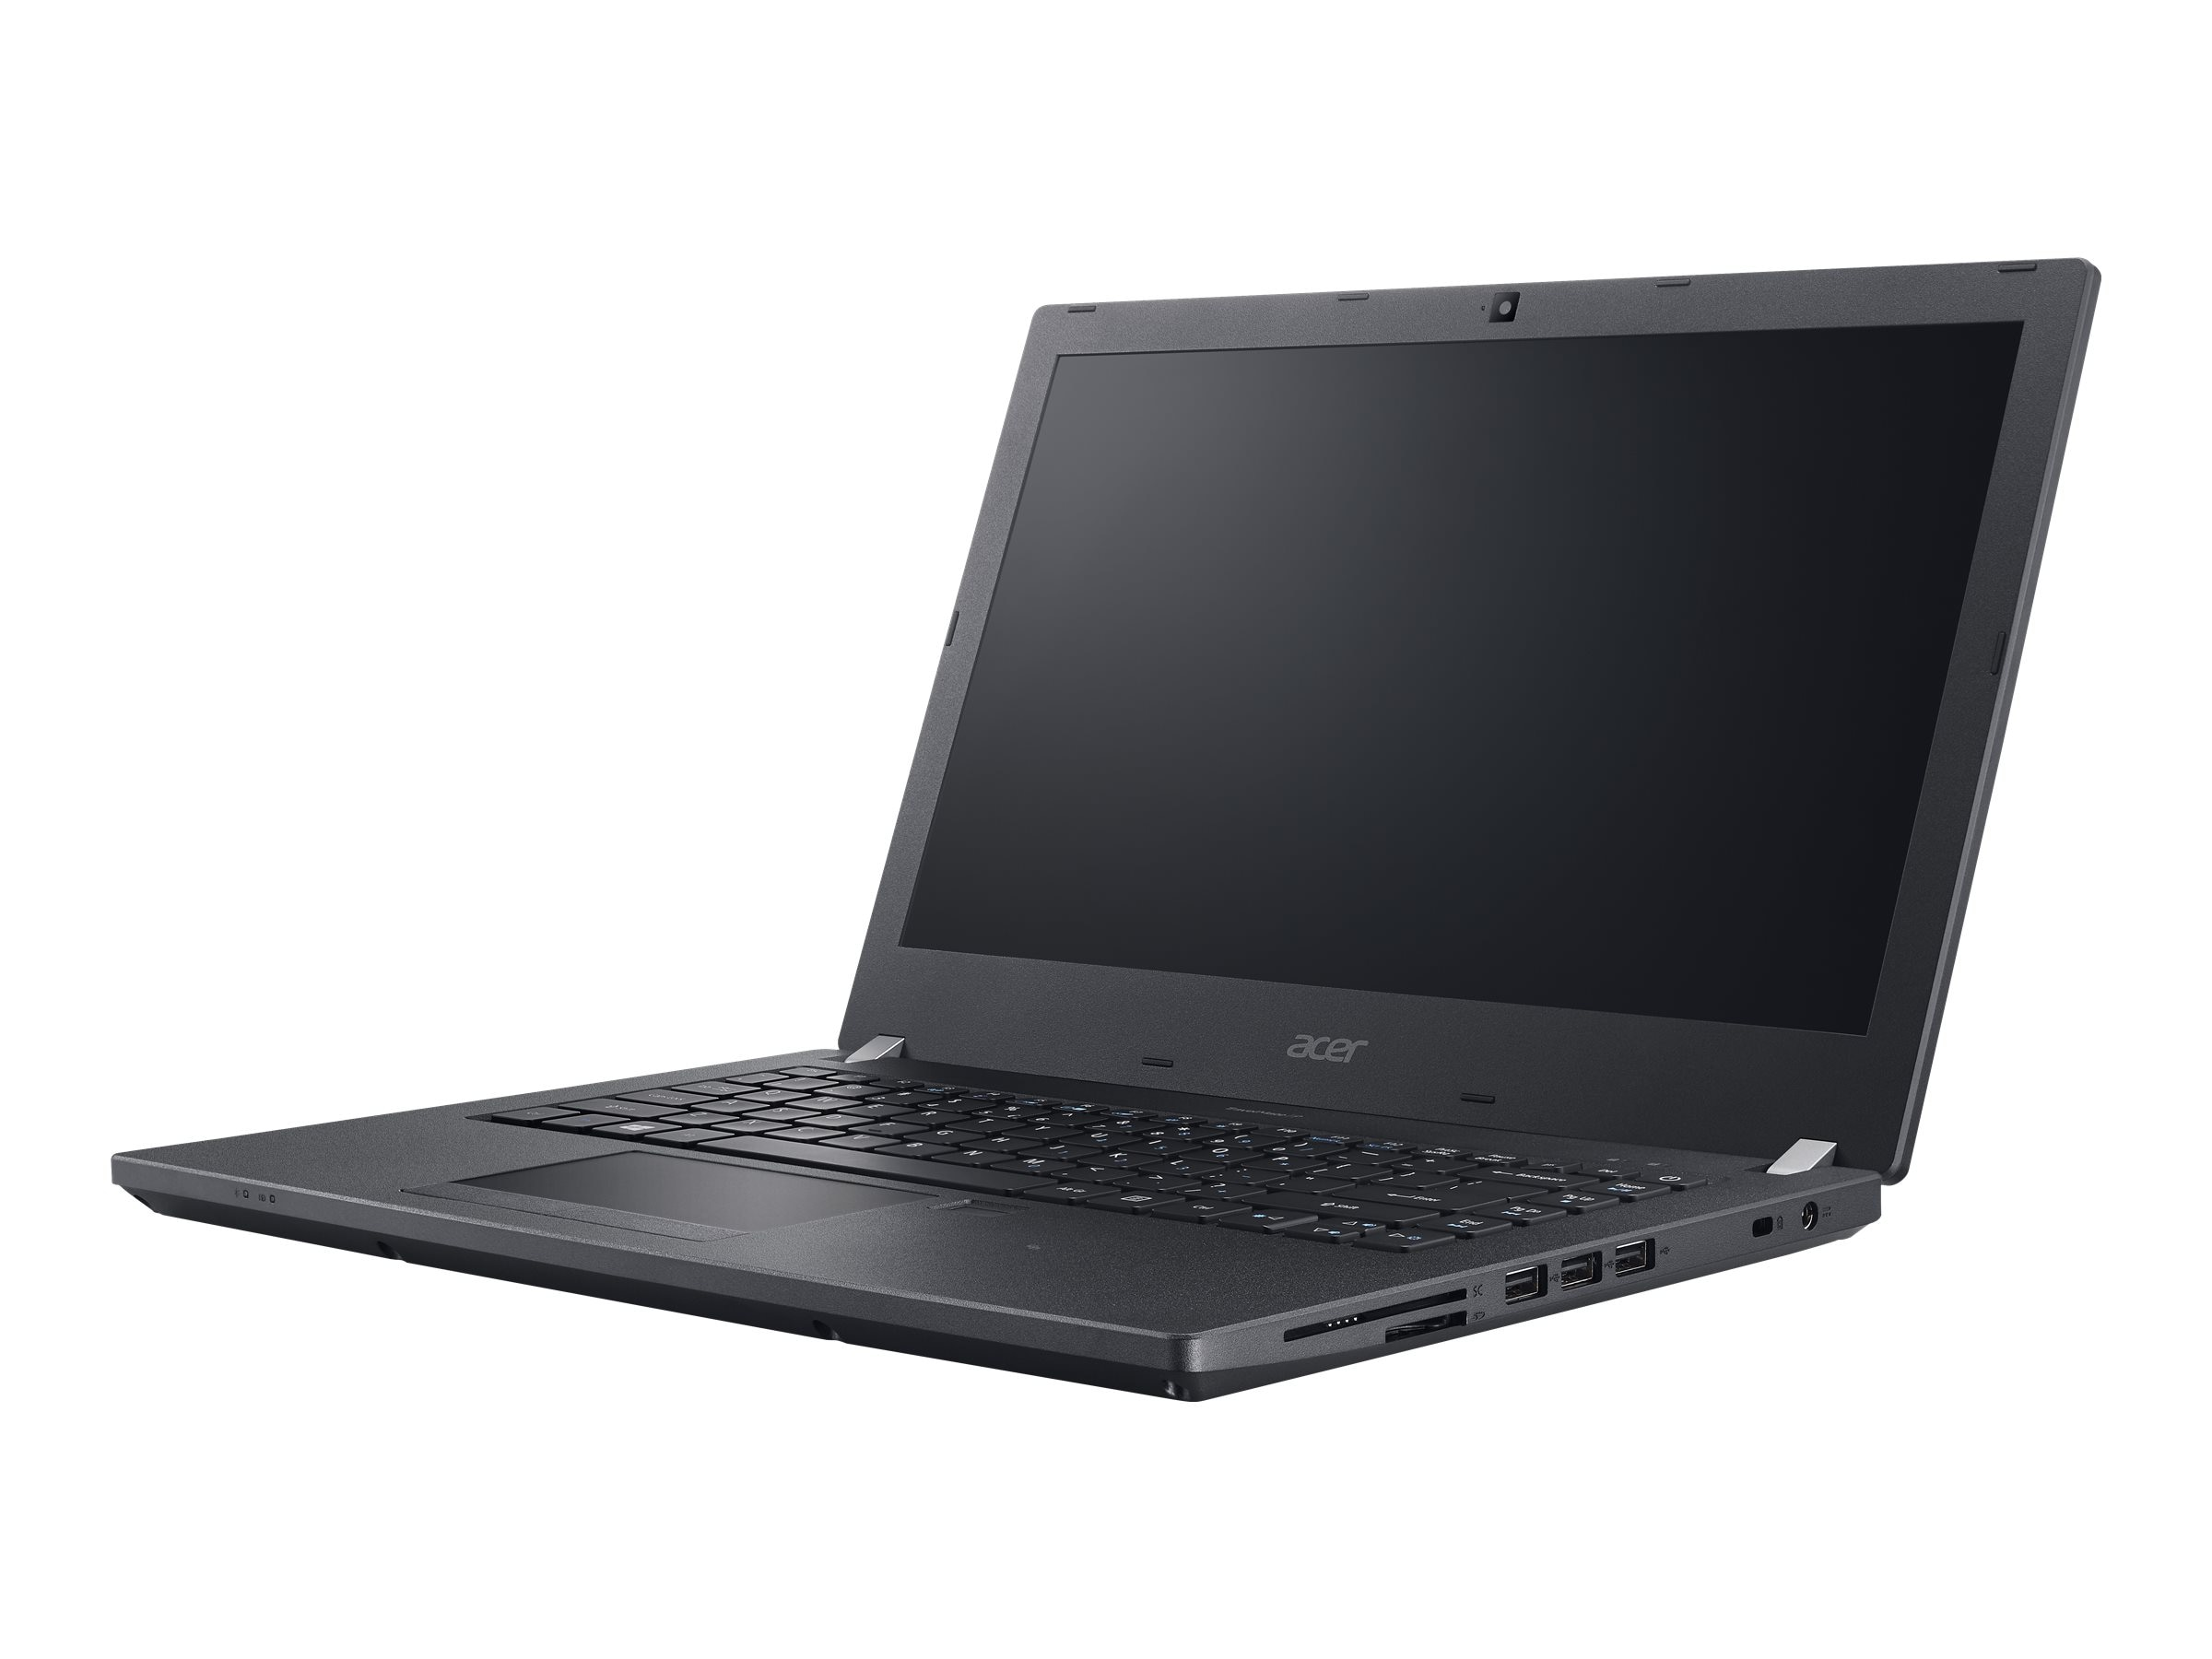 Acer NX.VDKAA.009 Image 1